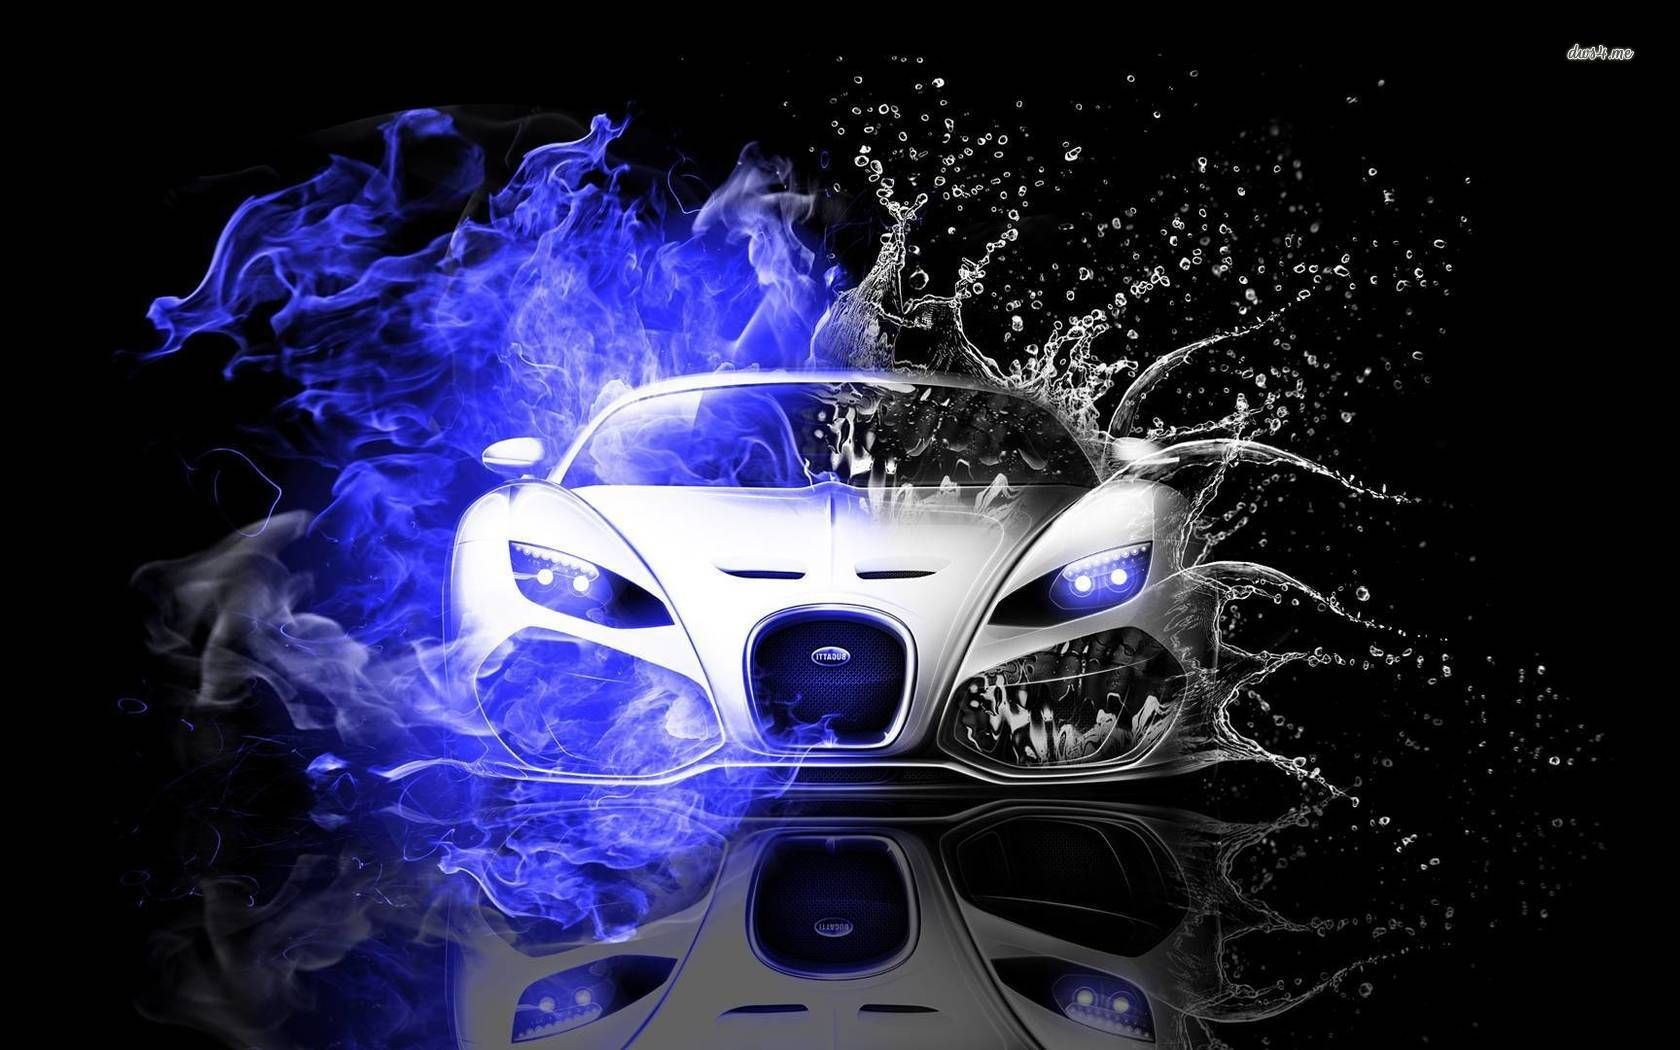 Attirant Bugatti Veyron In Fire And Water Wallpaper   Car Wallpapers   #45751